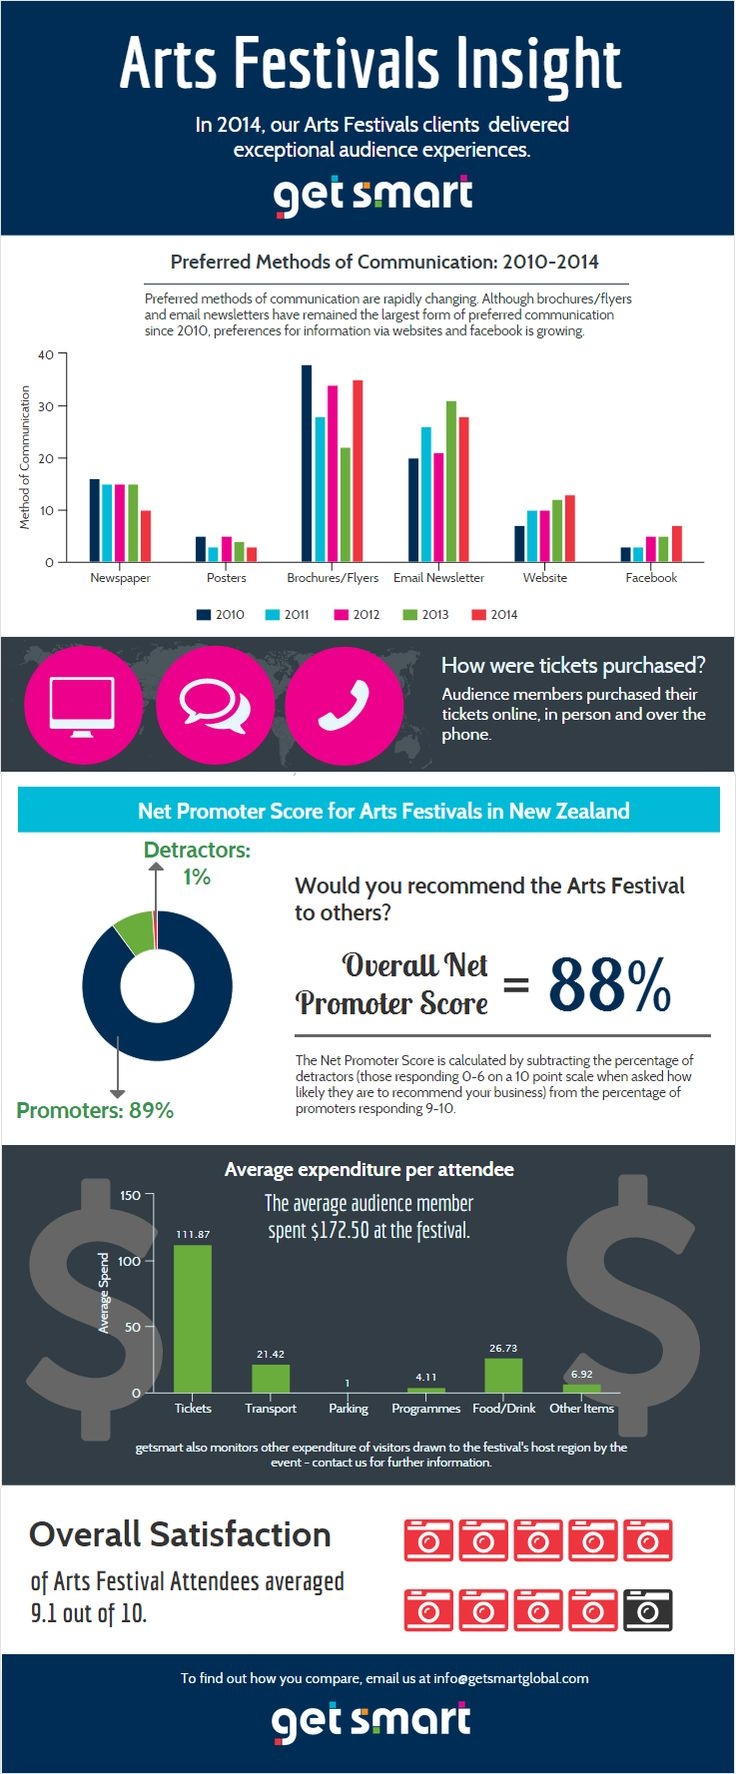 In 2014, our Arts Festivals clients delivered exceptional audience experiences. Check out the results of the getsmart benchmark